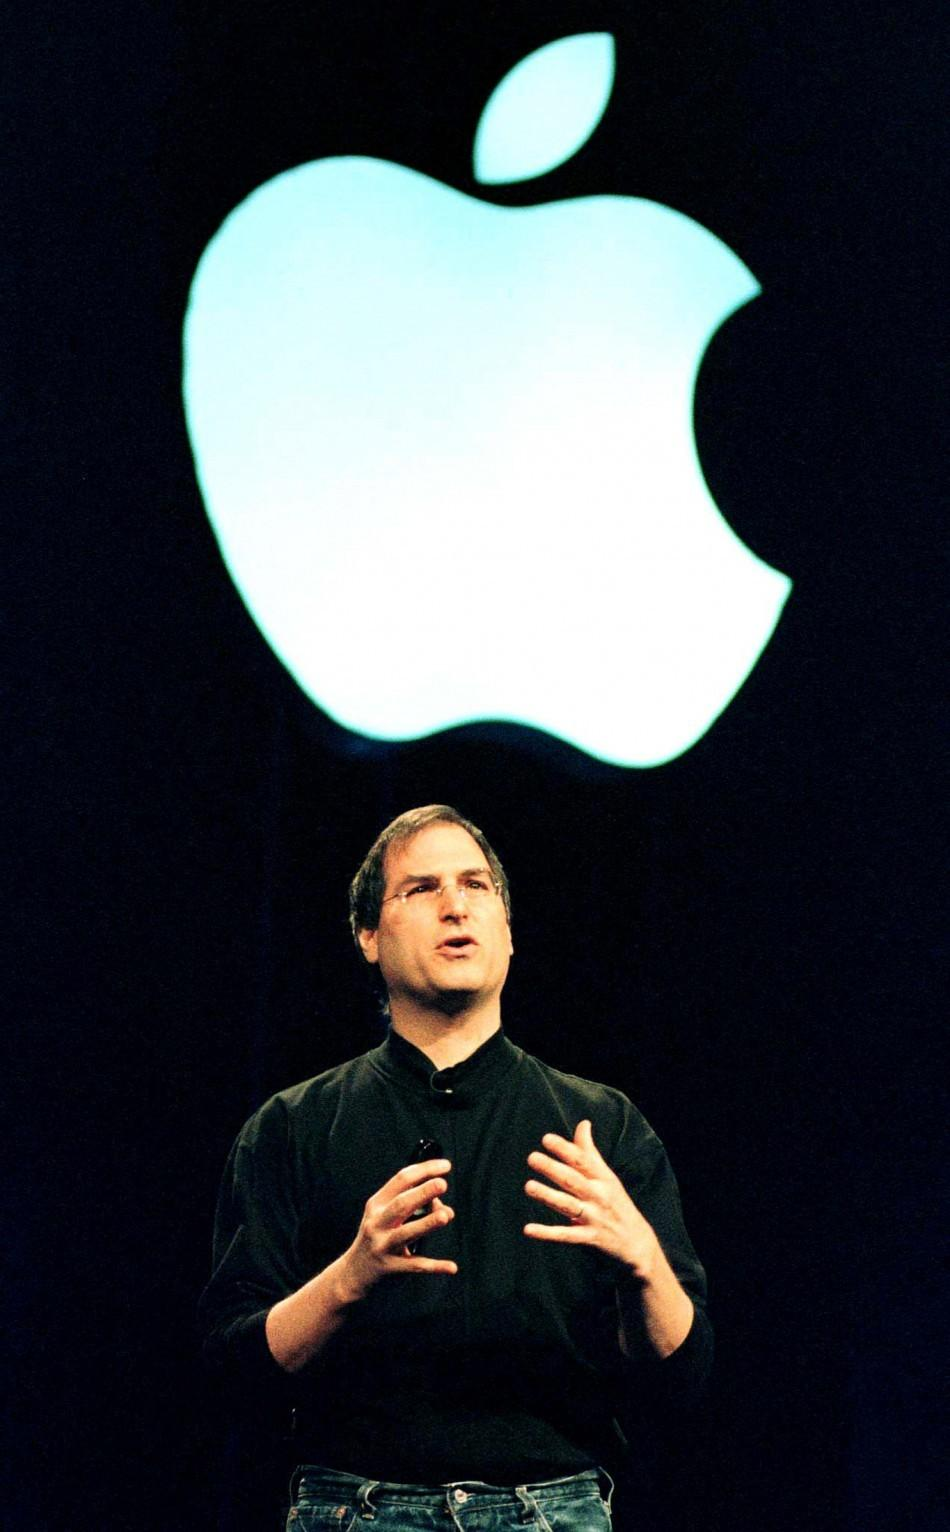 Steve Jobs Dead: Legendary Inventor Through the Years